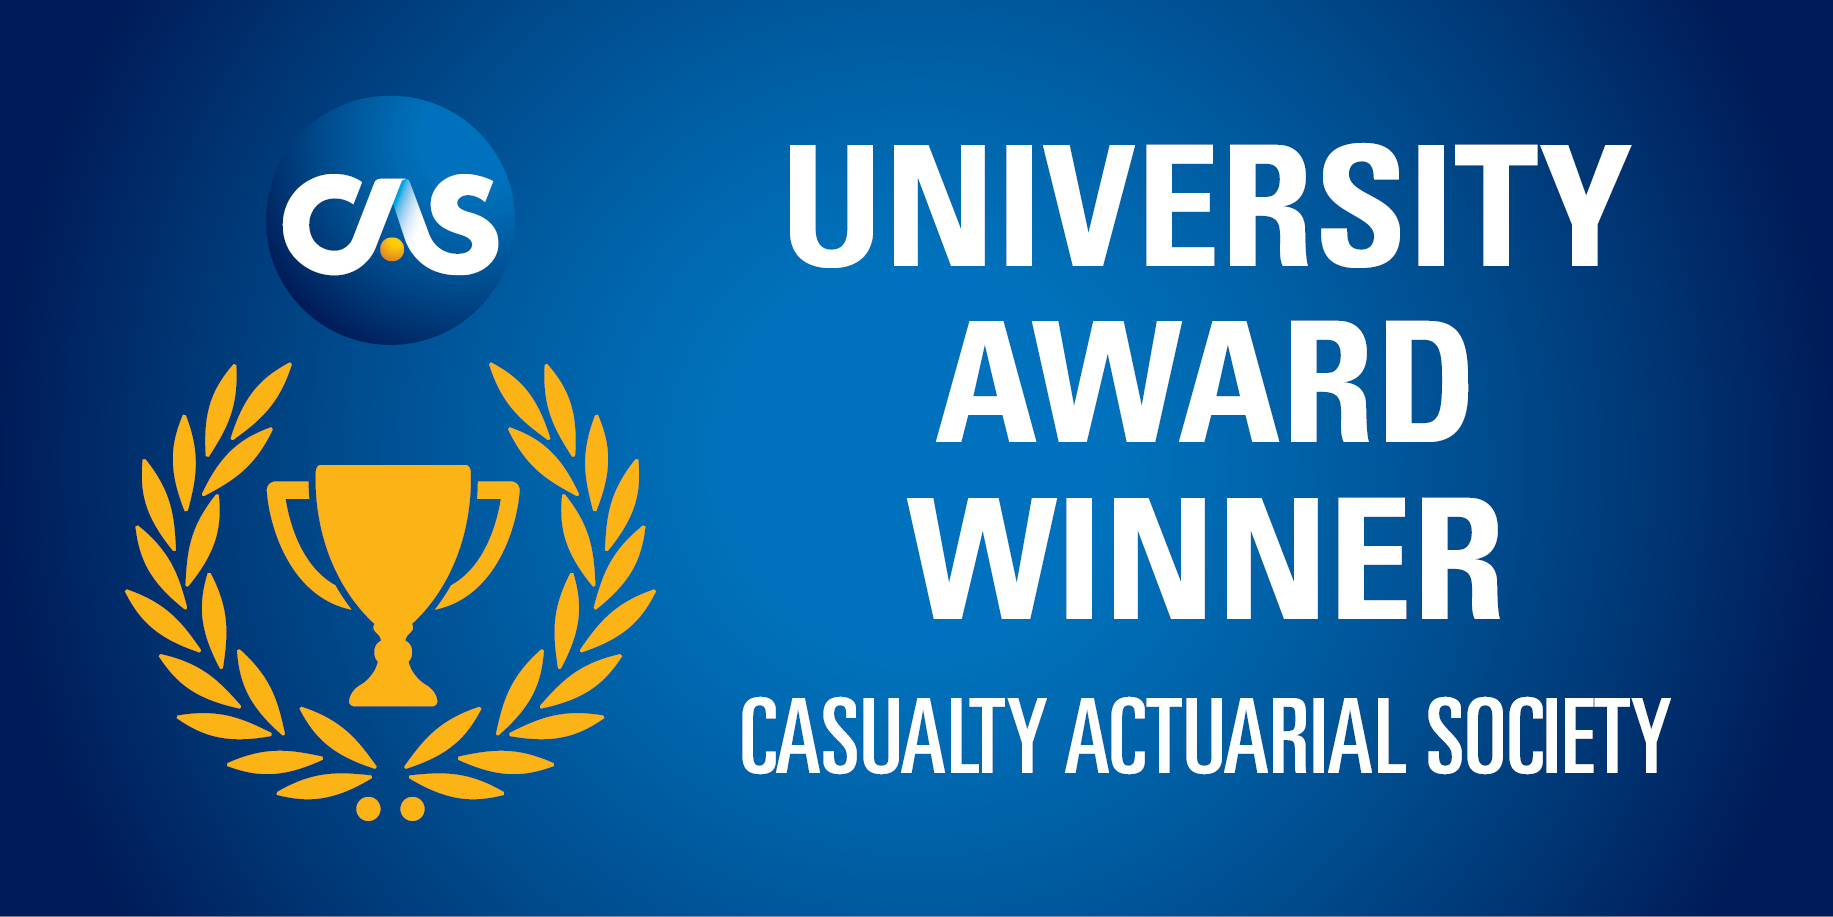 CAS University Award Winner